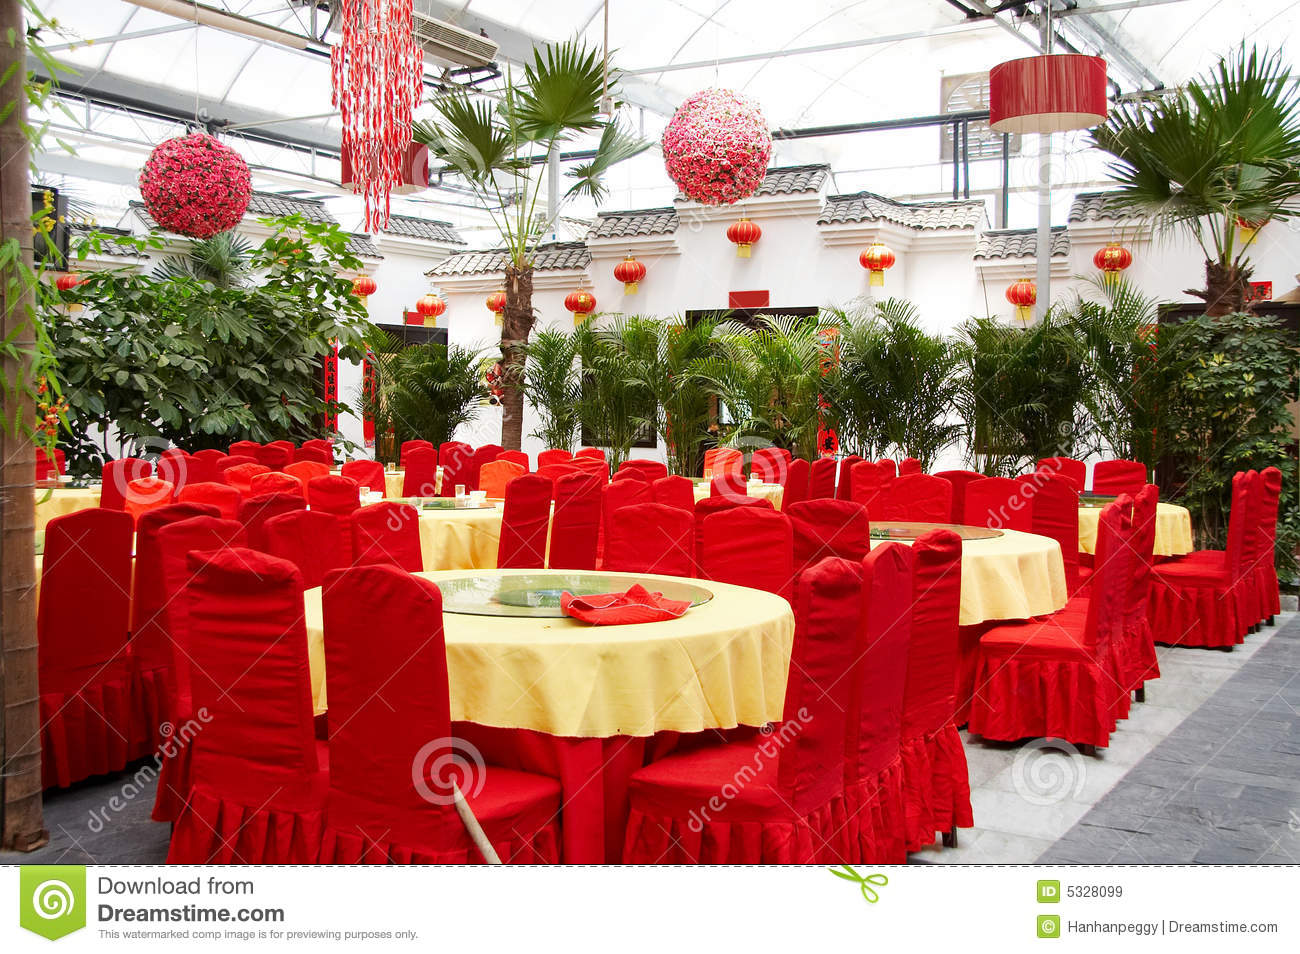 interior of chinese restaurant royalty free stock images - image